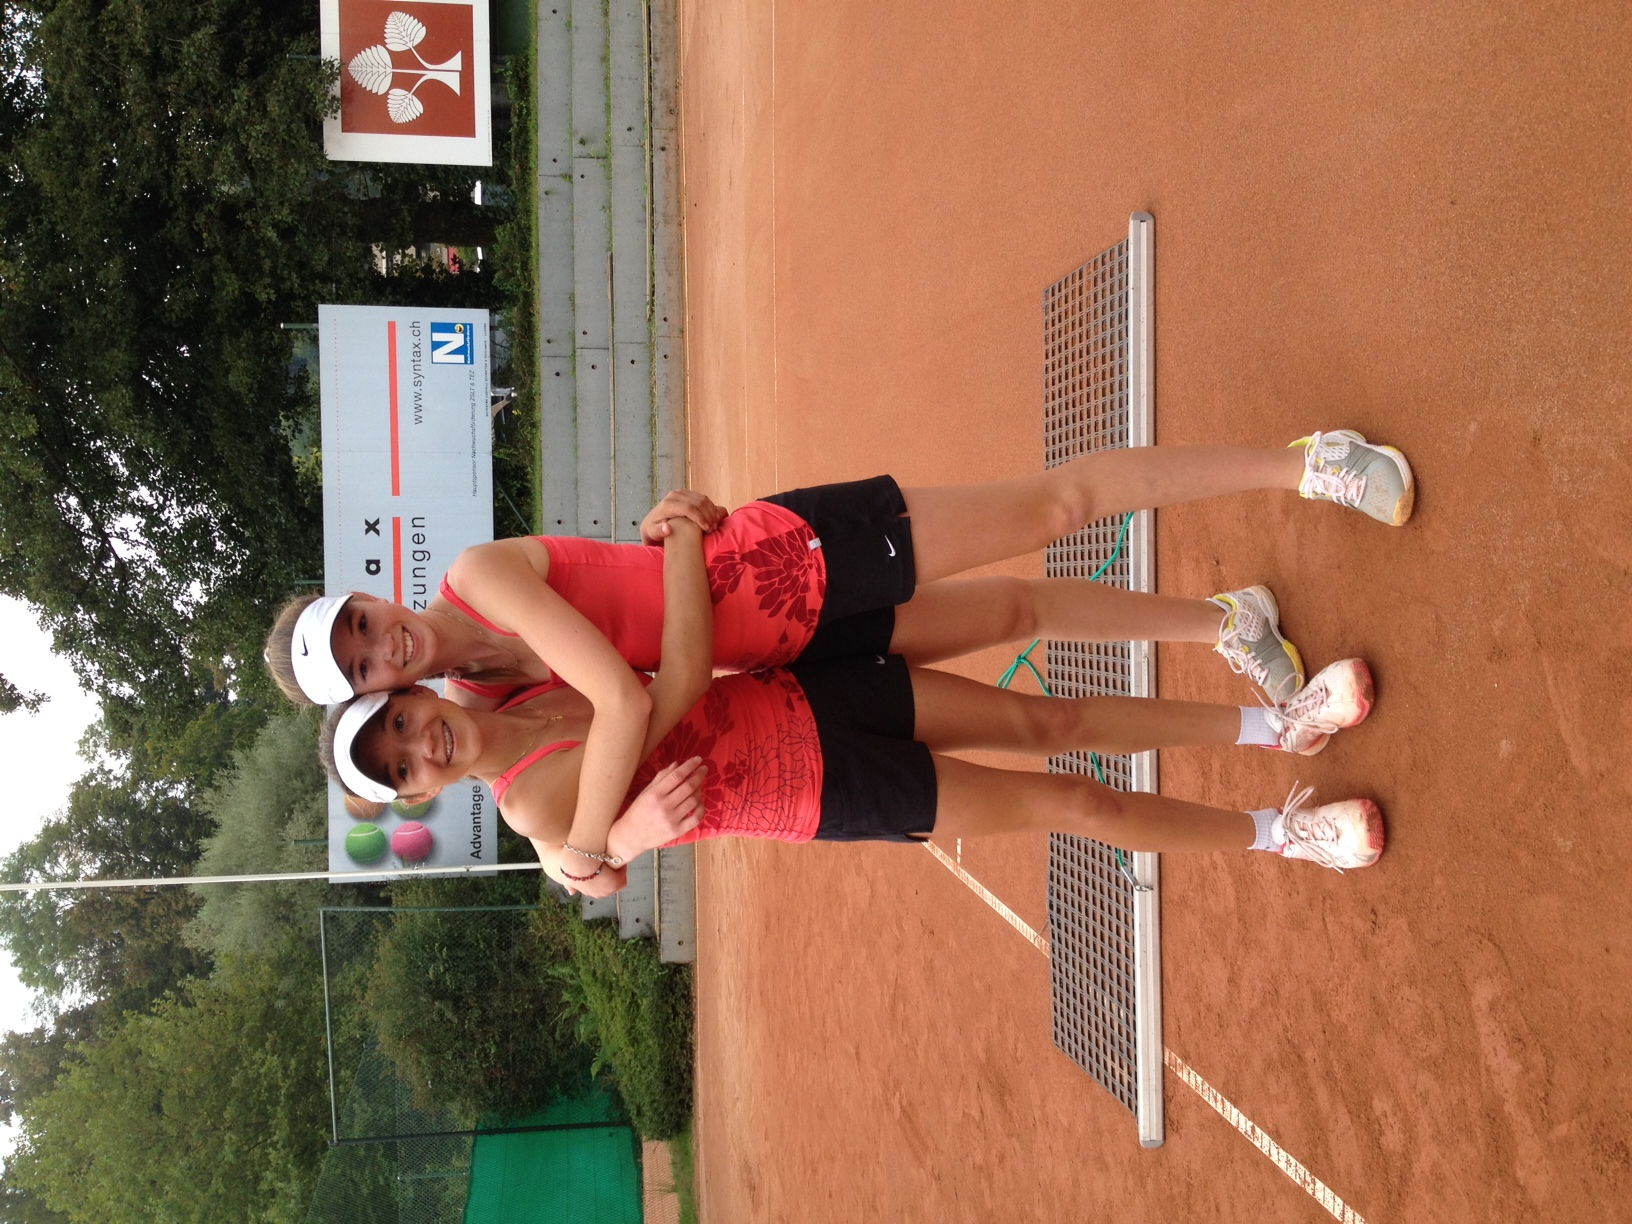 Leonie Küng and Simona Waltert …after a win in Doubles in Lucerne ITF U18 Grade 5